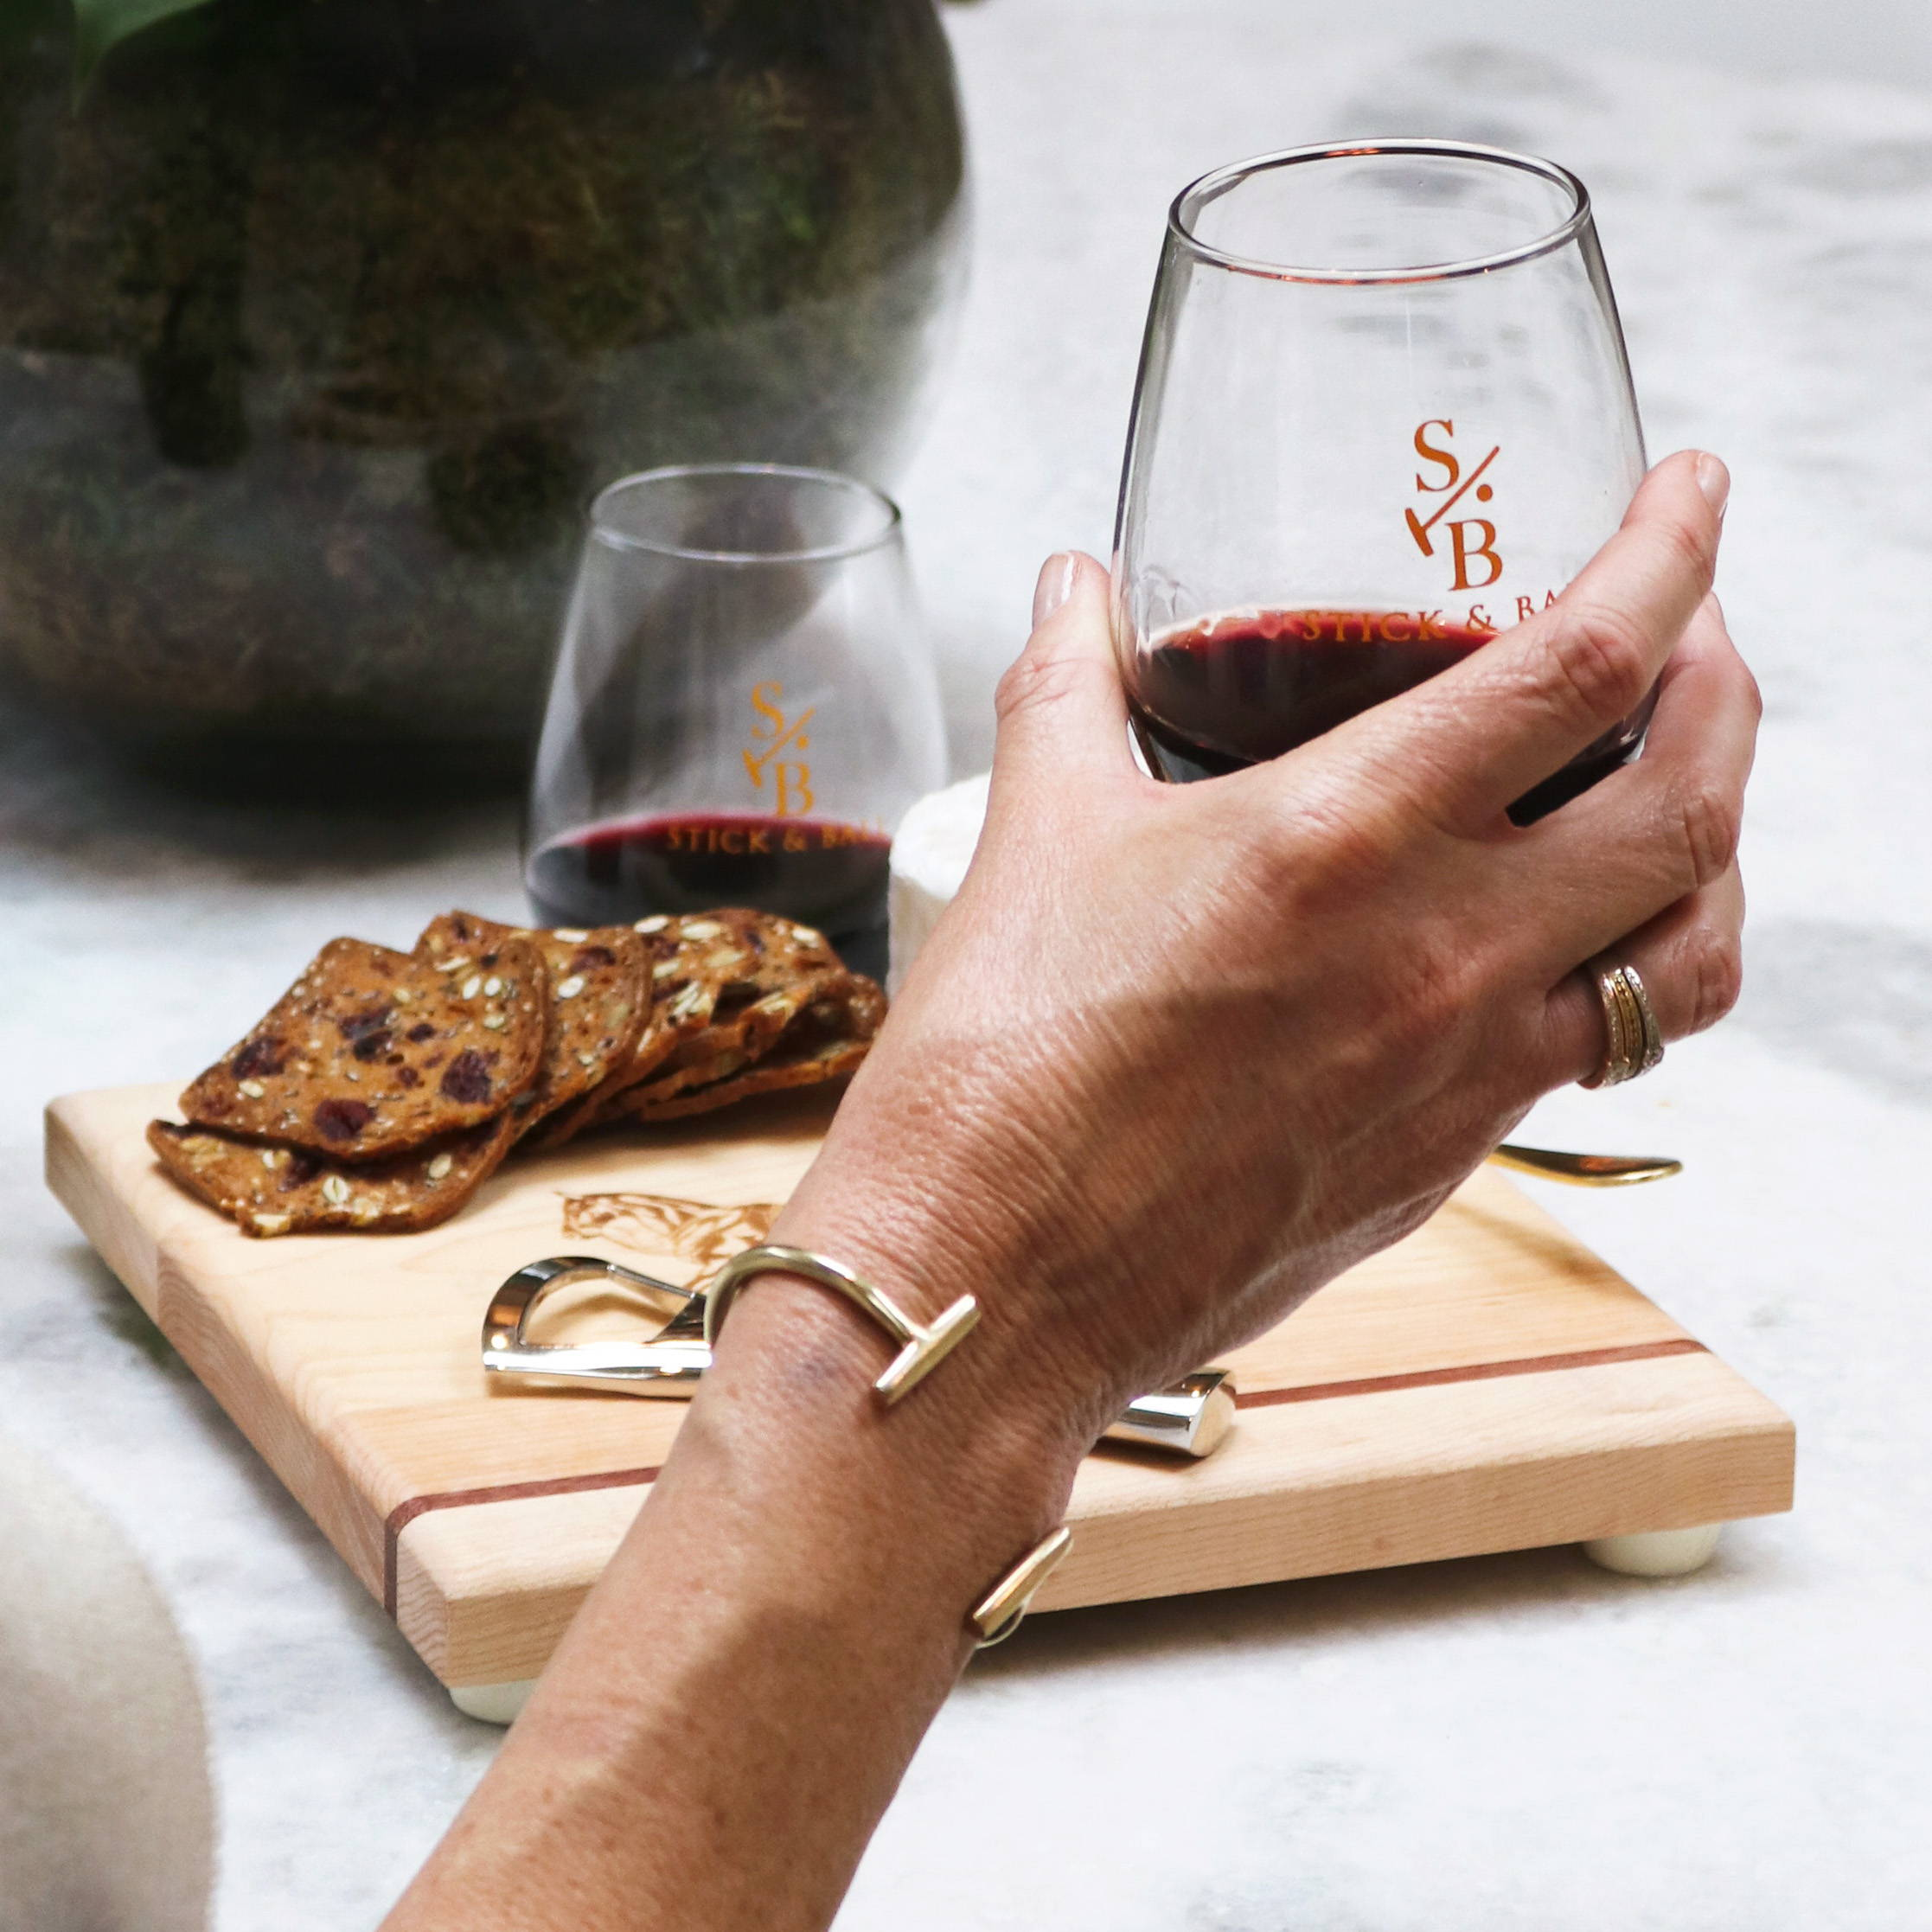 Woman holding a glass of wine in the Stick & Ball Stemless glass with cheese & cracker spread